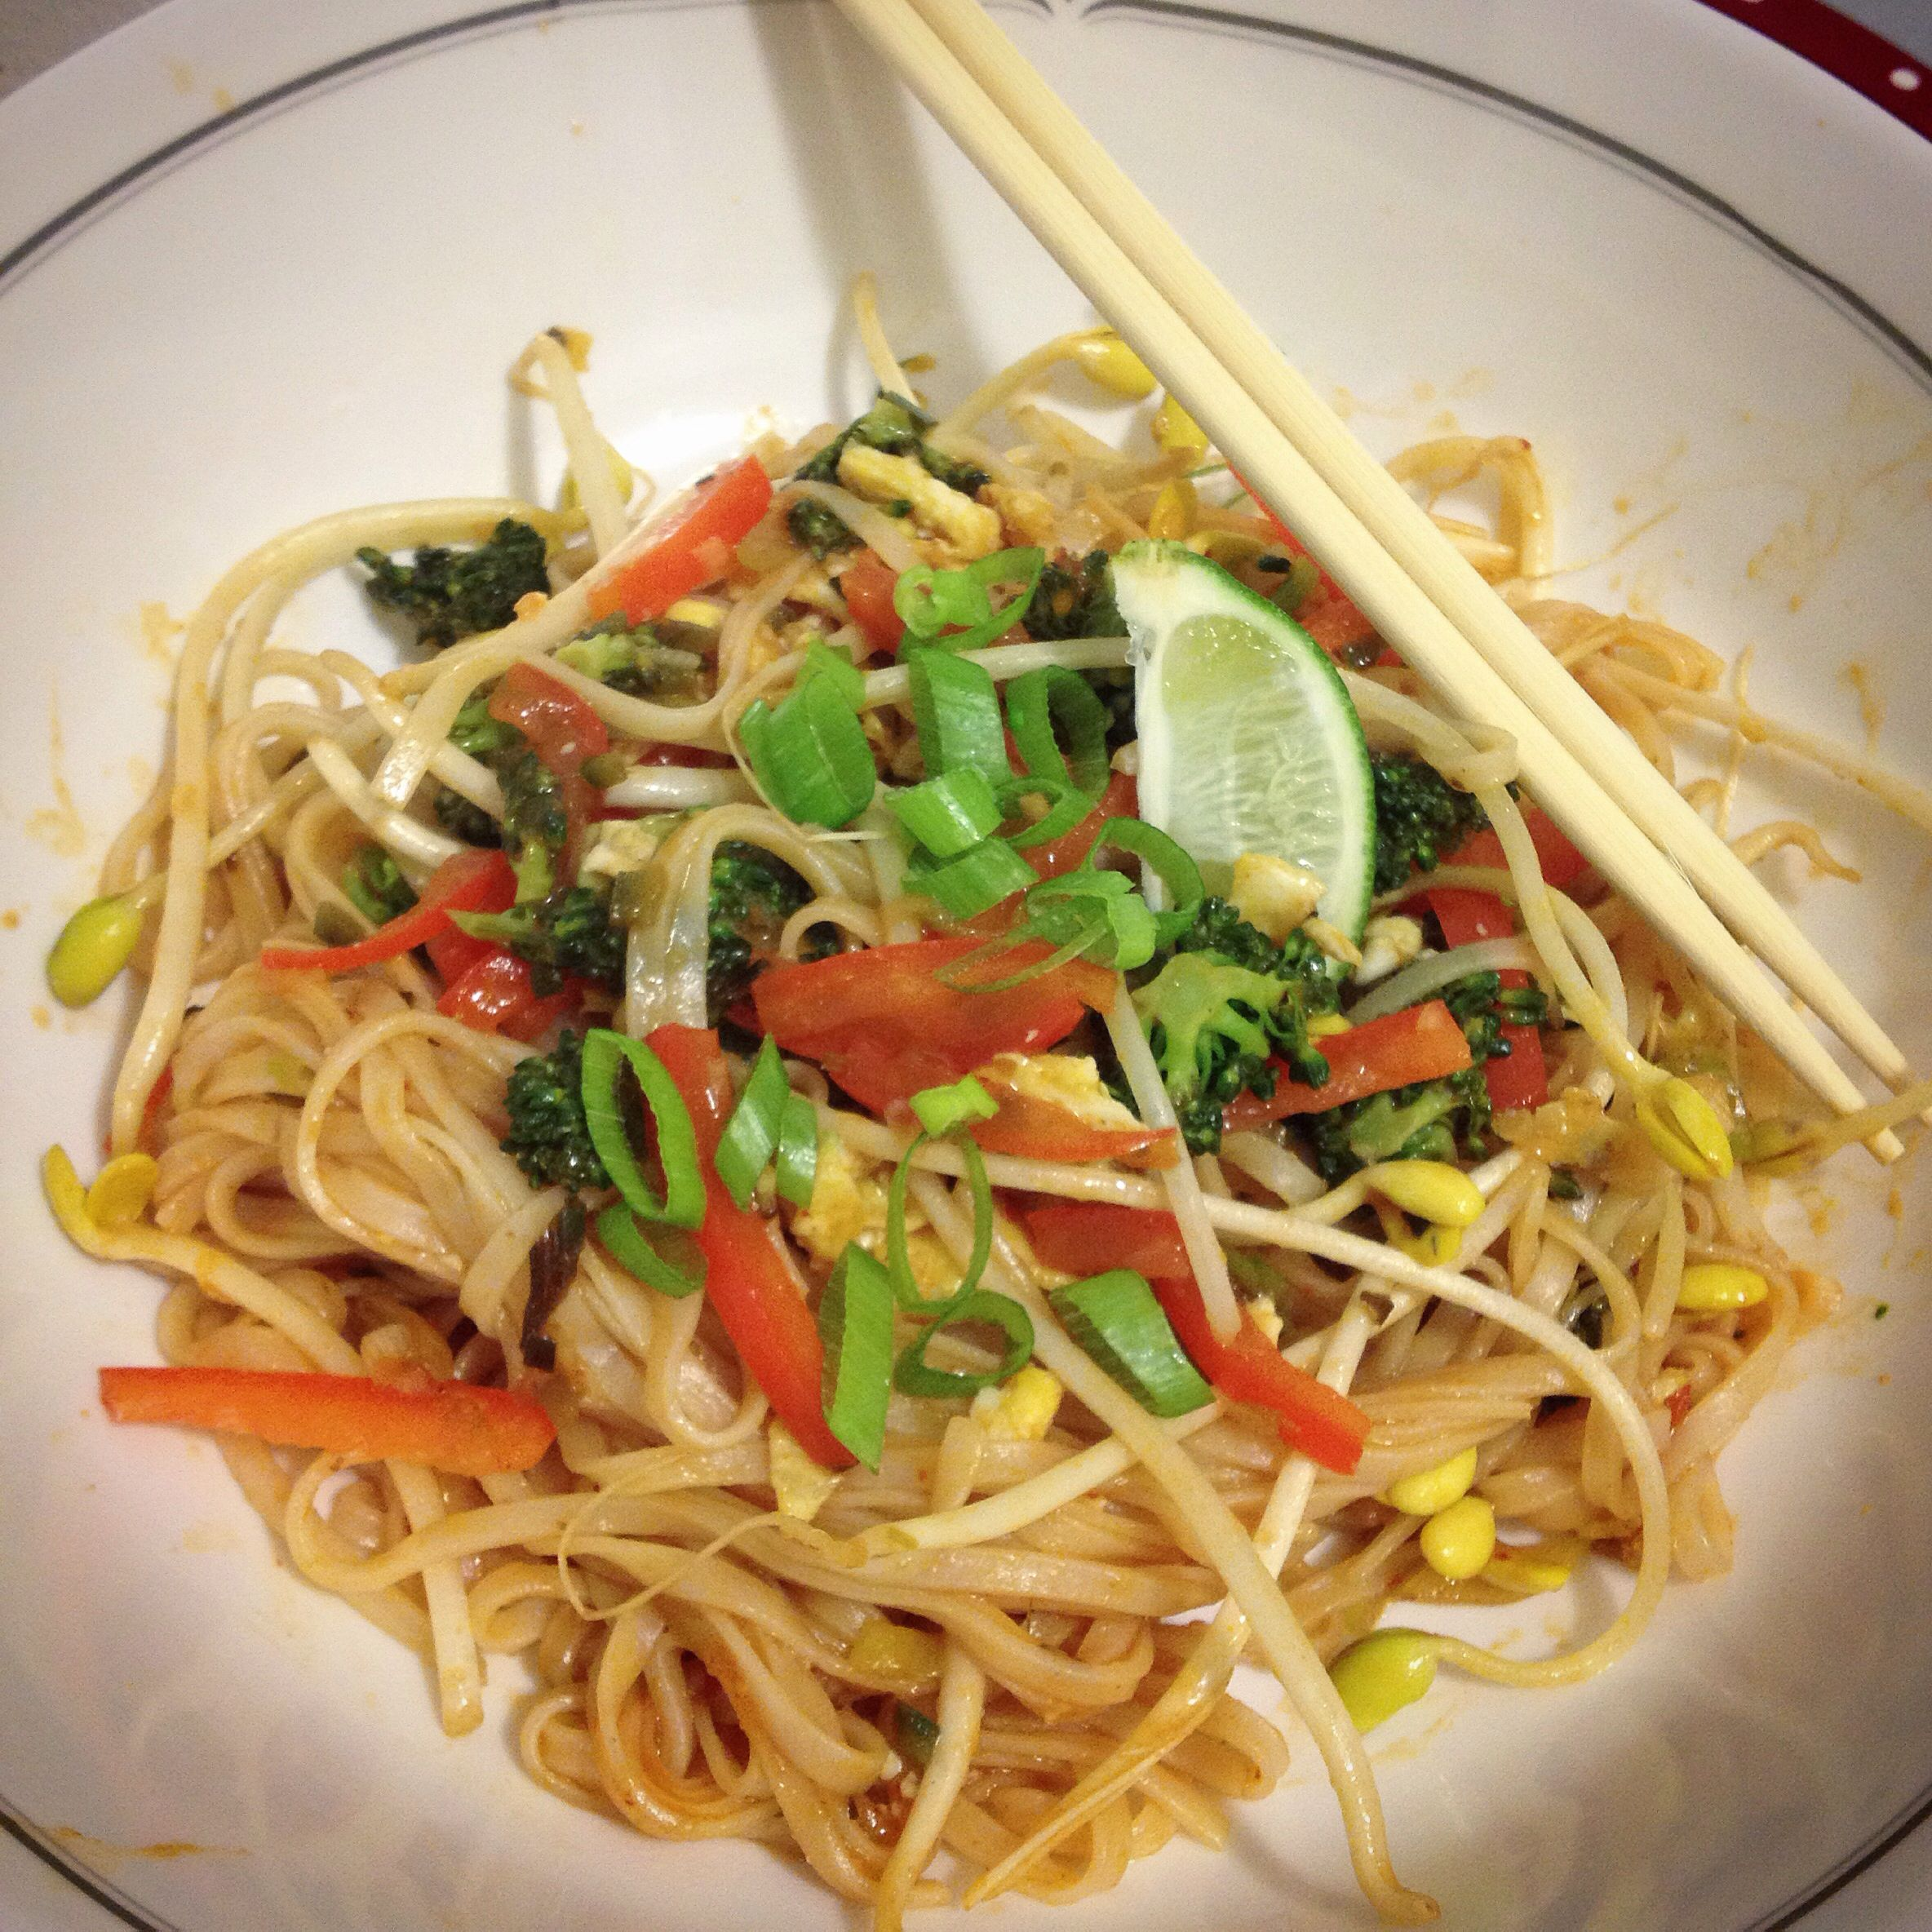 Homemade Pad Thai. With broccoli, red peppers, green onion and sprouts.